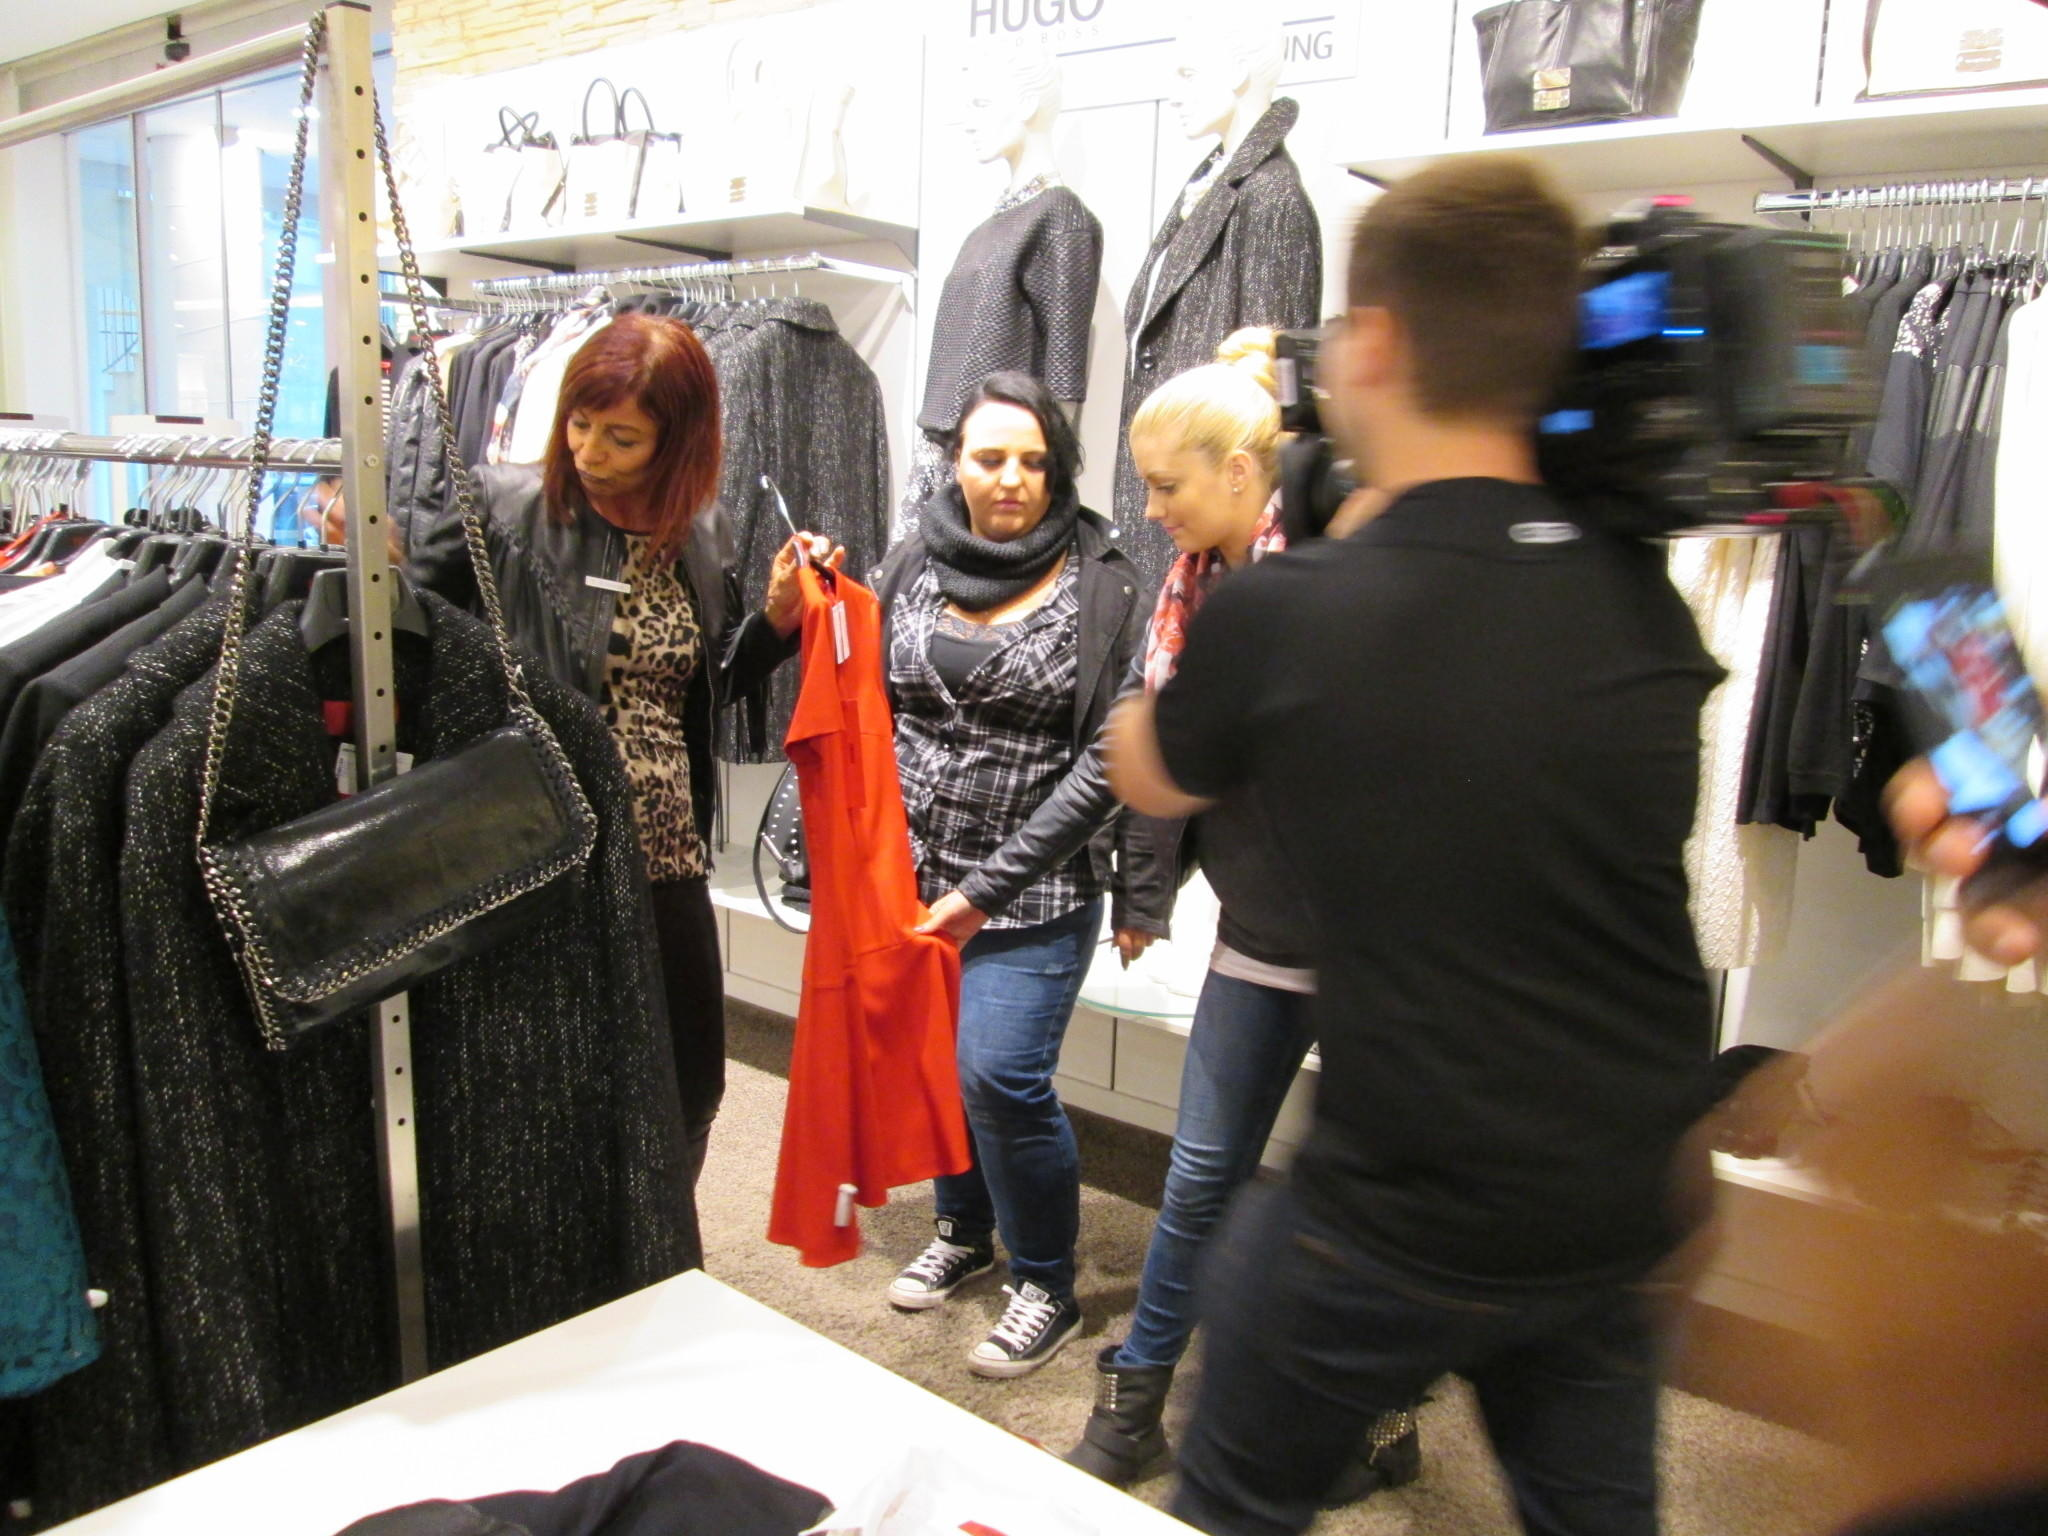 Augsburg Shopping Exklusive Backstage Bilder Der Quotshopping Queen Quot Woche In